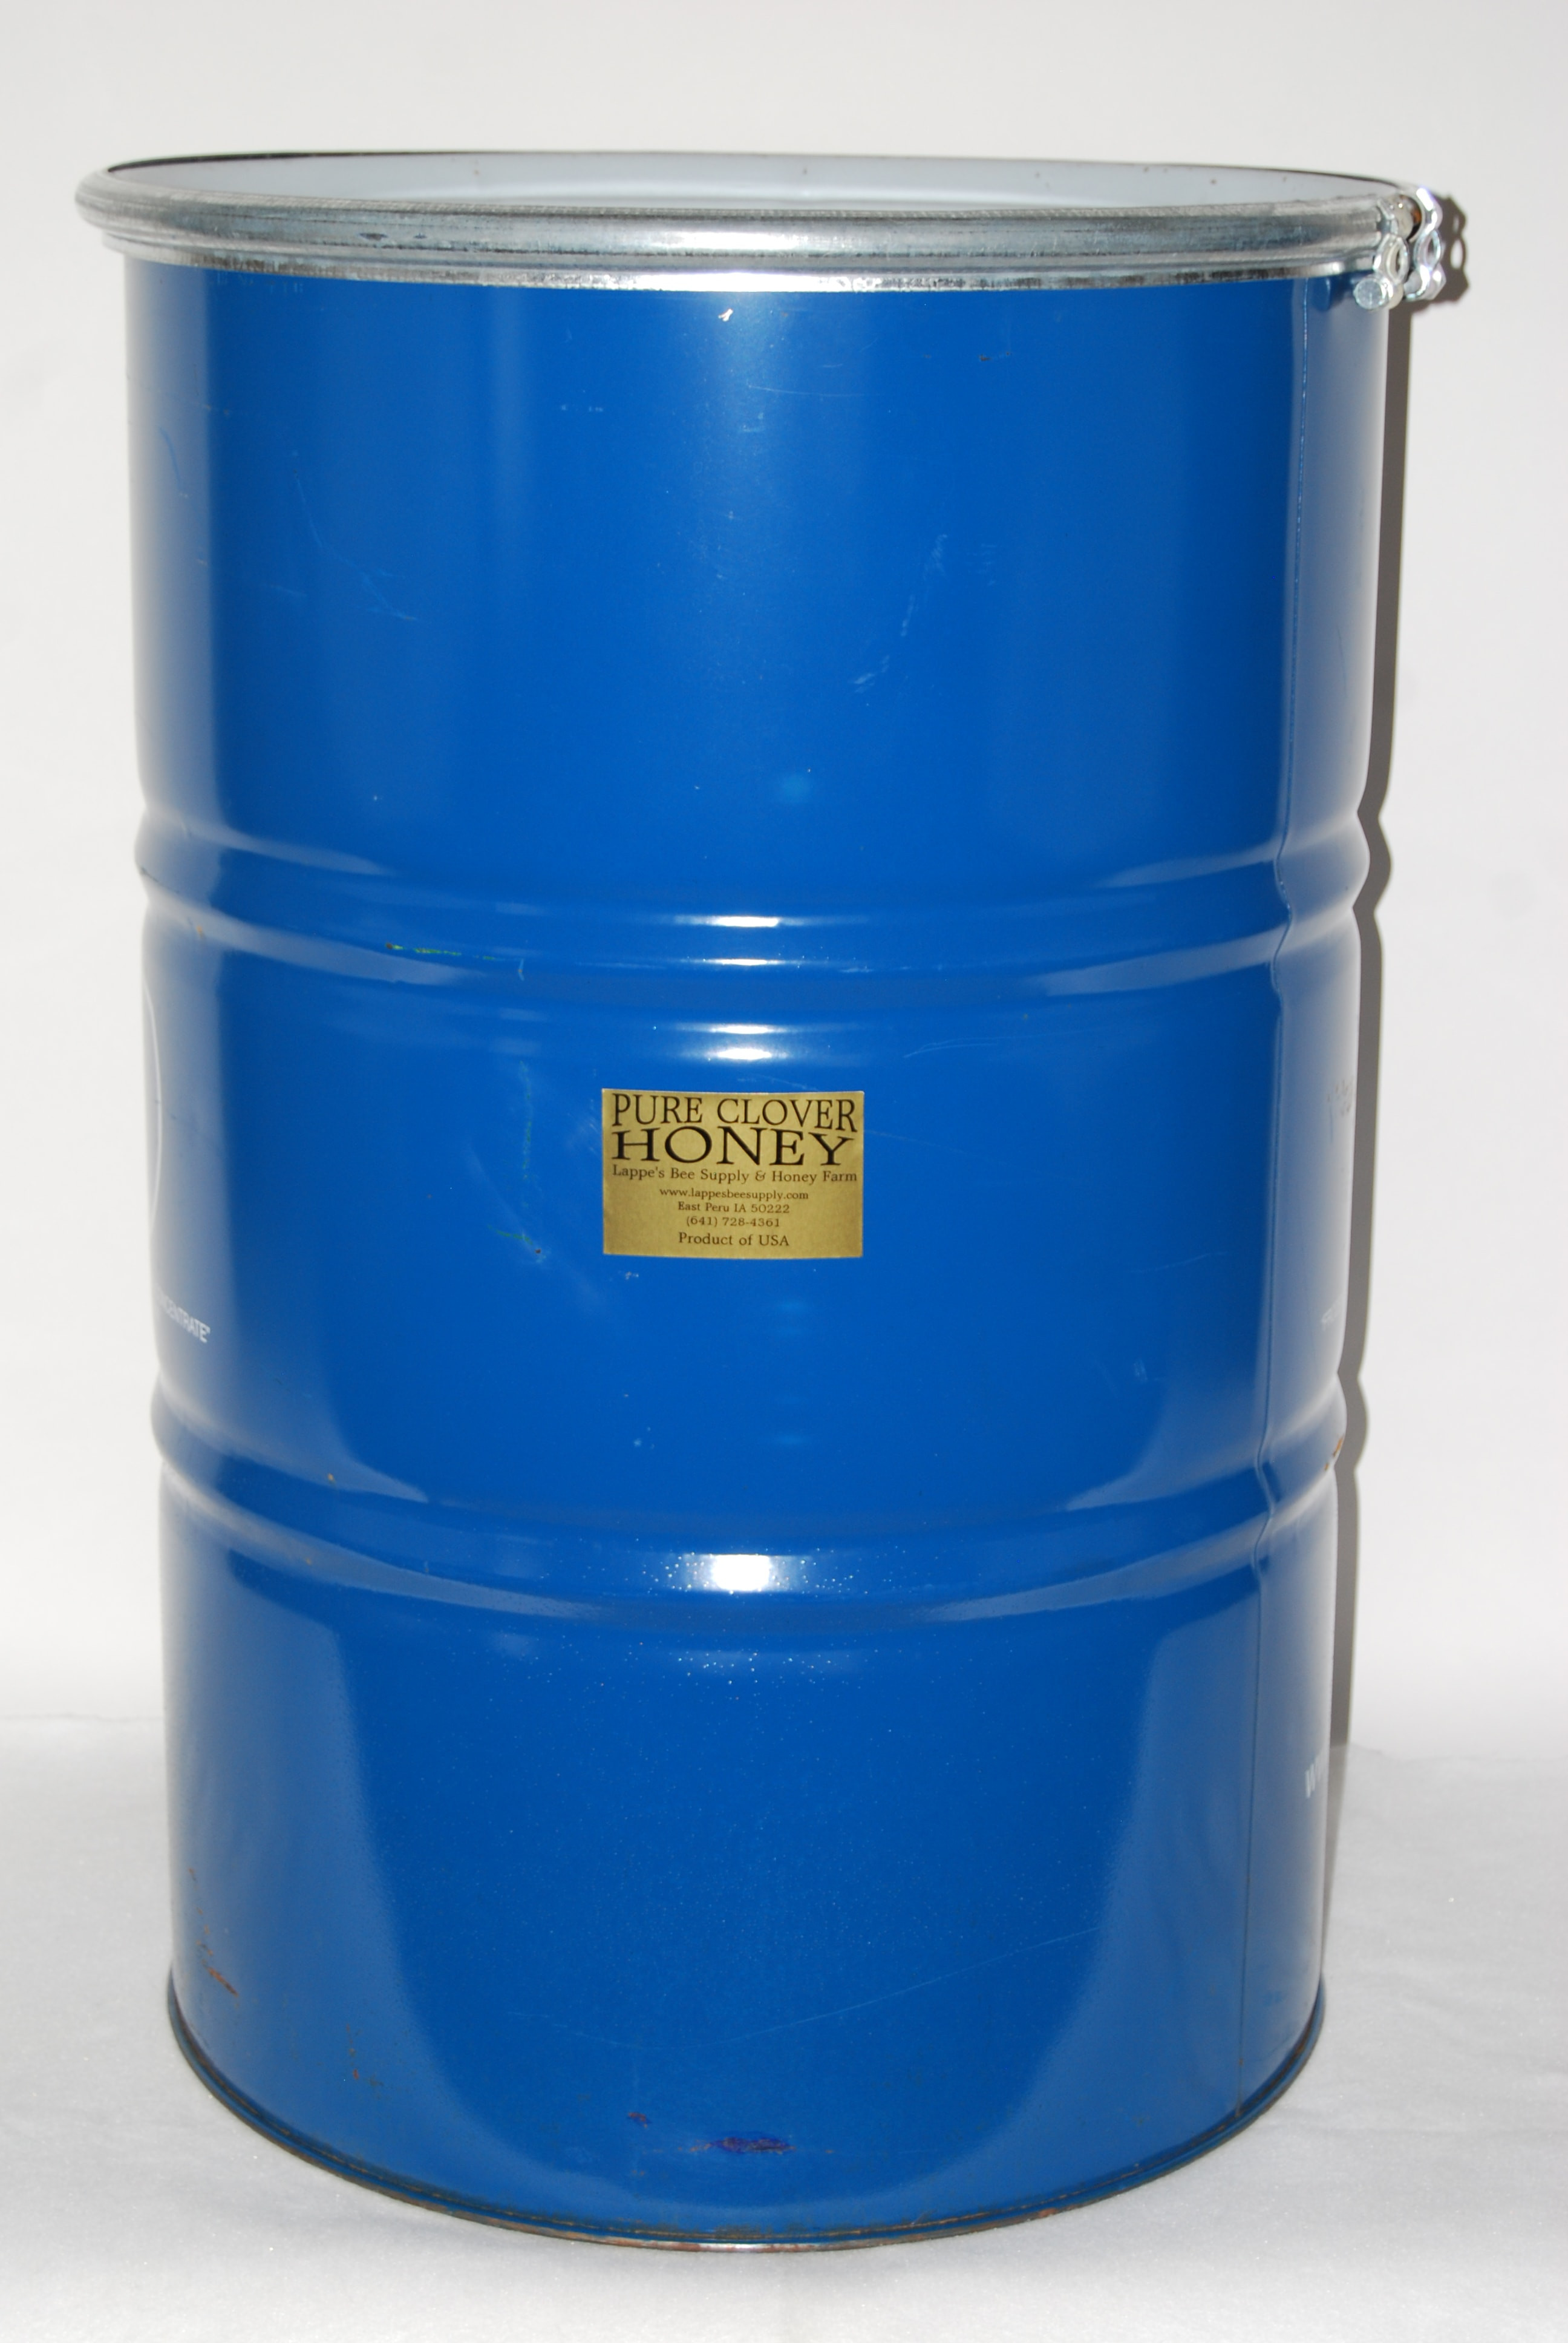 55 Gallon Drums of Honey For Sale